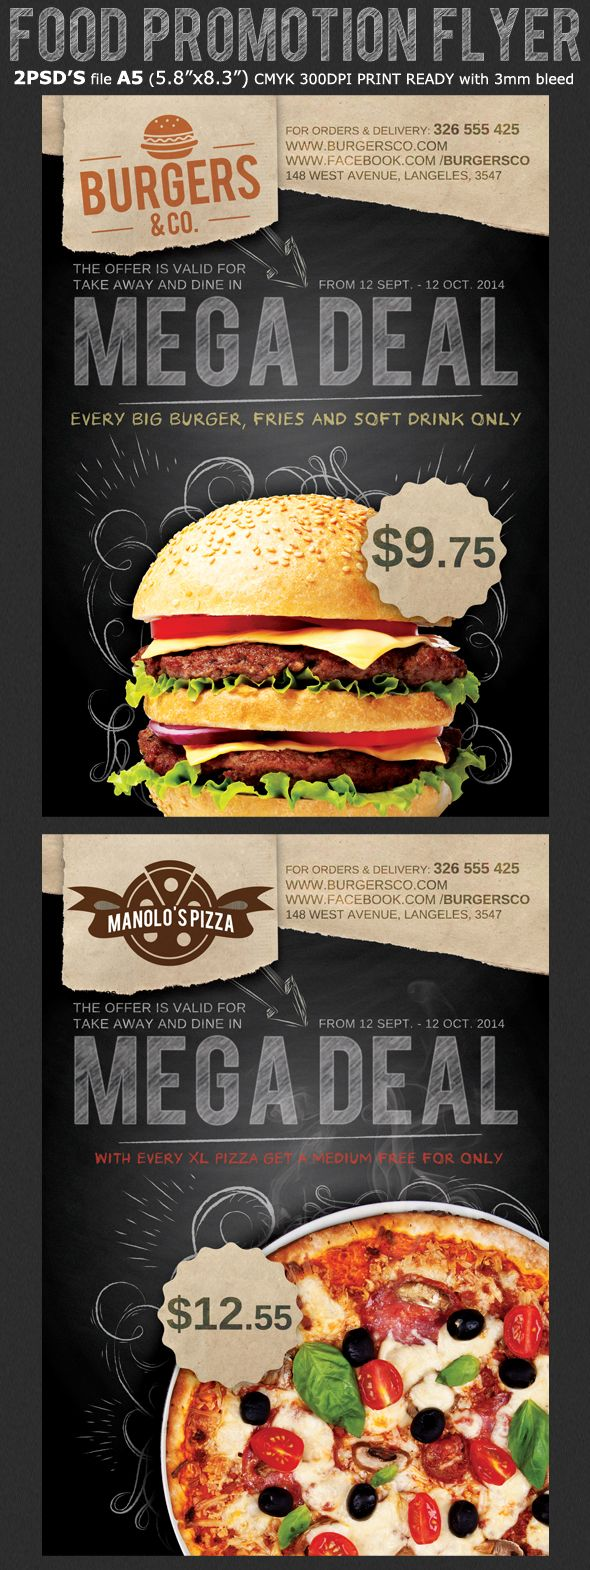 Restaurant Fast Food Promotion Flyer Template On Behance Contoh